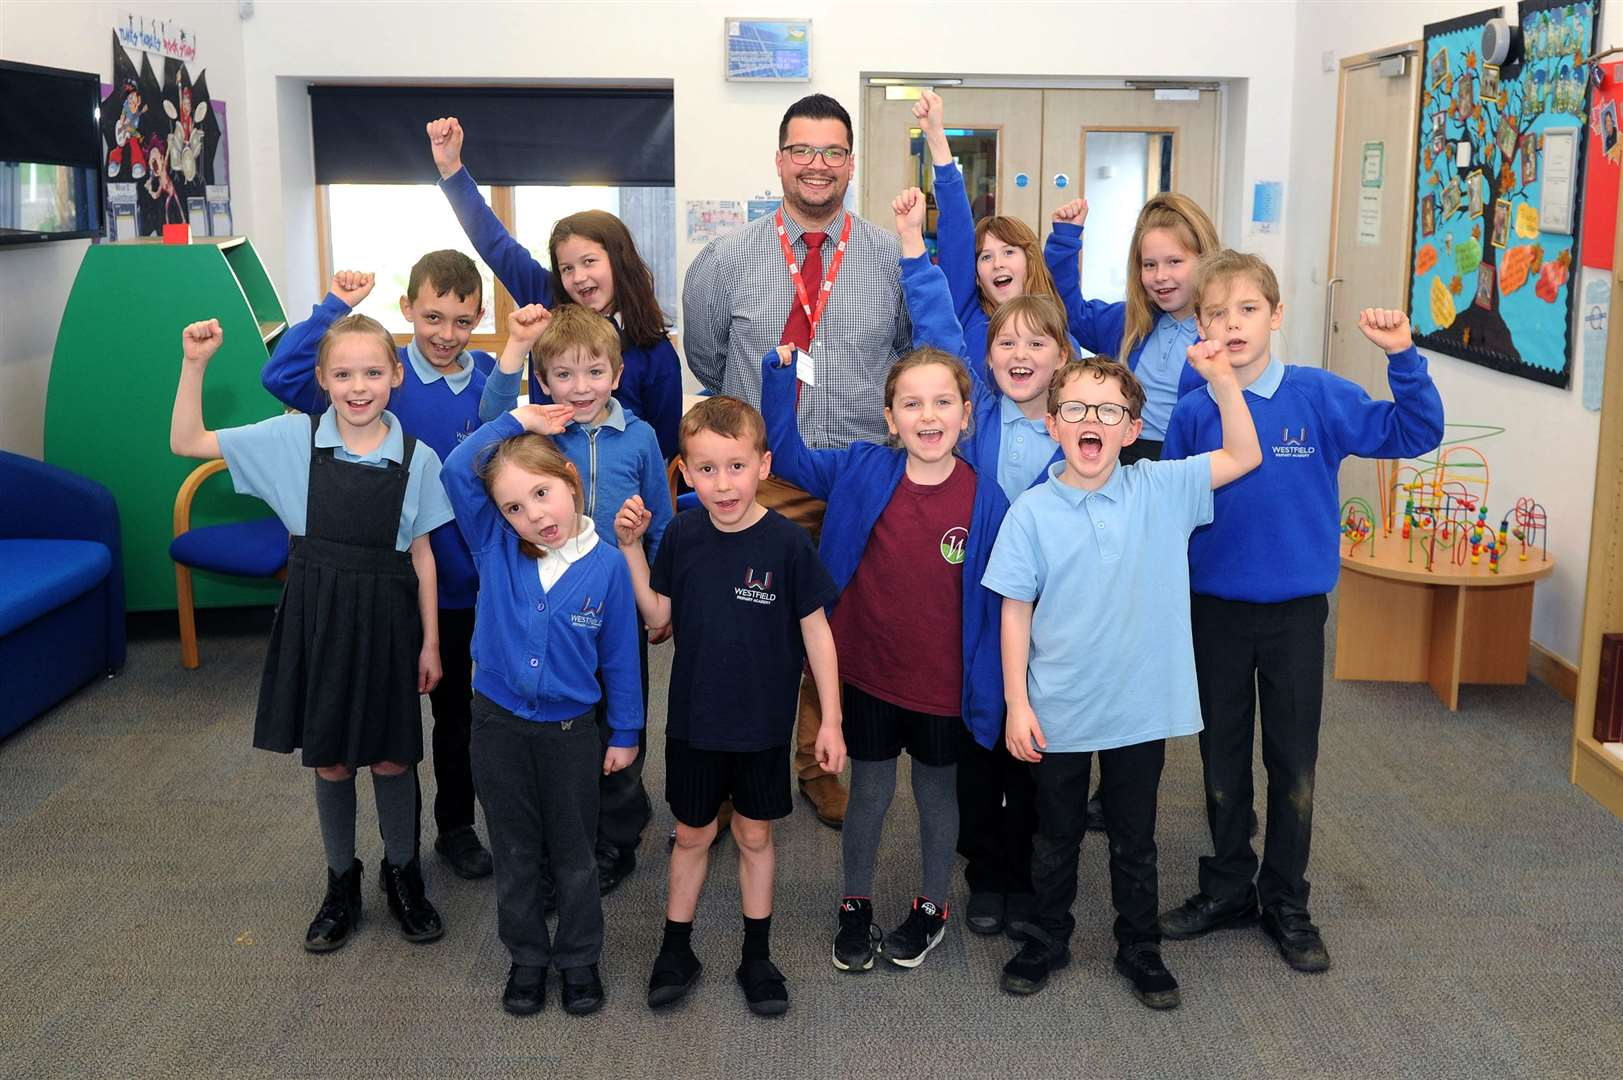 Westfield Primary Academy pupils and head teacher David Maguire were in a jubilant mood after the school's positive Ofsted report. Picture by Mecha Morton.